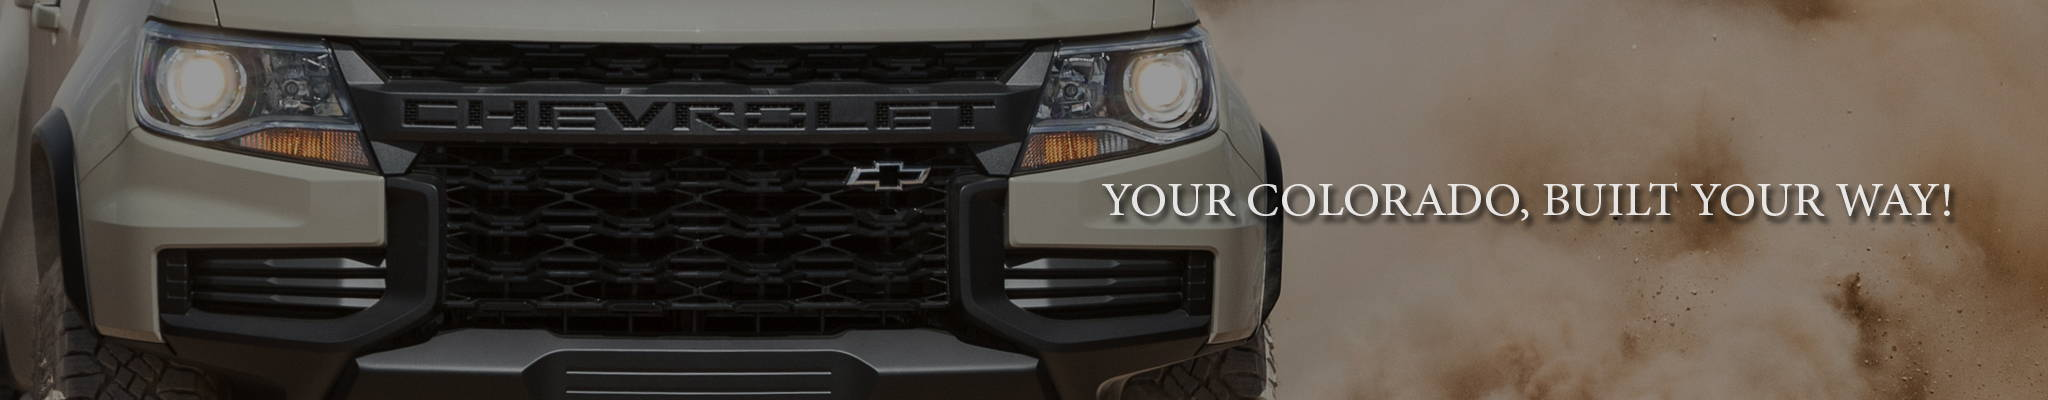 3C Truck Conversions Your Chevy Truck Built Your Way! Customize your Build Here.